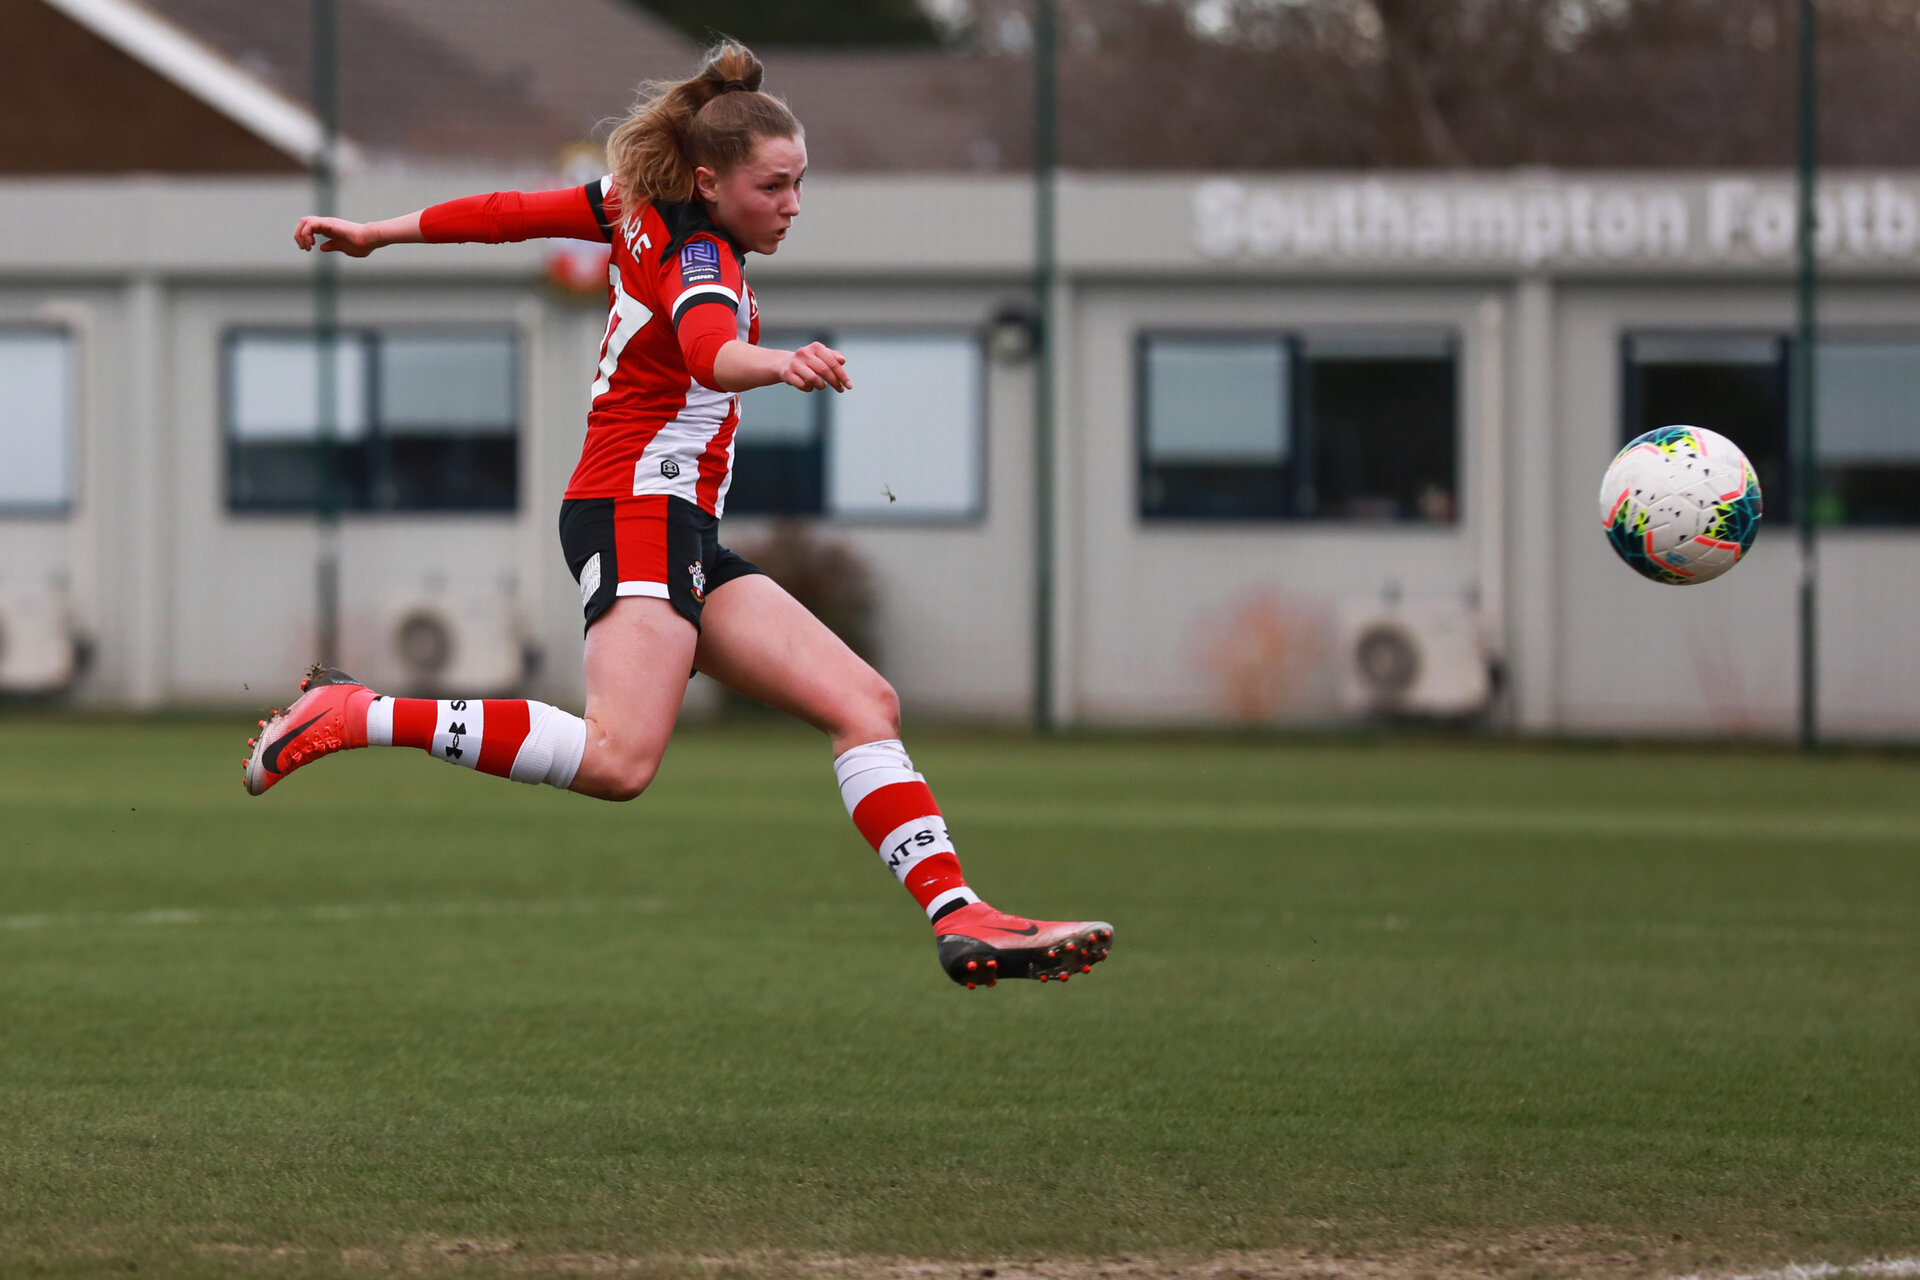 SOUTHAMPTON, ENGLAND - March 1: Alisha Ware of Southampton FC Womens scores her hattrick and her side's sixth goal during the FA Women's National League match between Southampton Women and Maidenhead United at Staplewood Campus on March 1 2020, Exeter, England. (Photo by Tom Mulholland/Southampton FC)